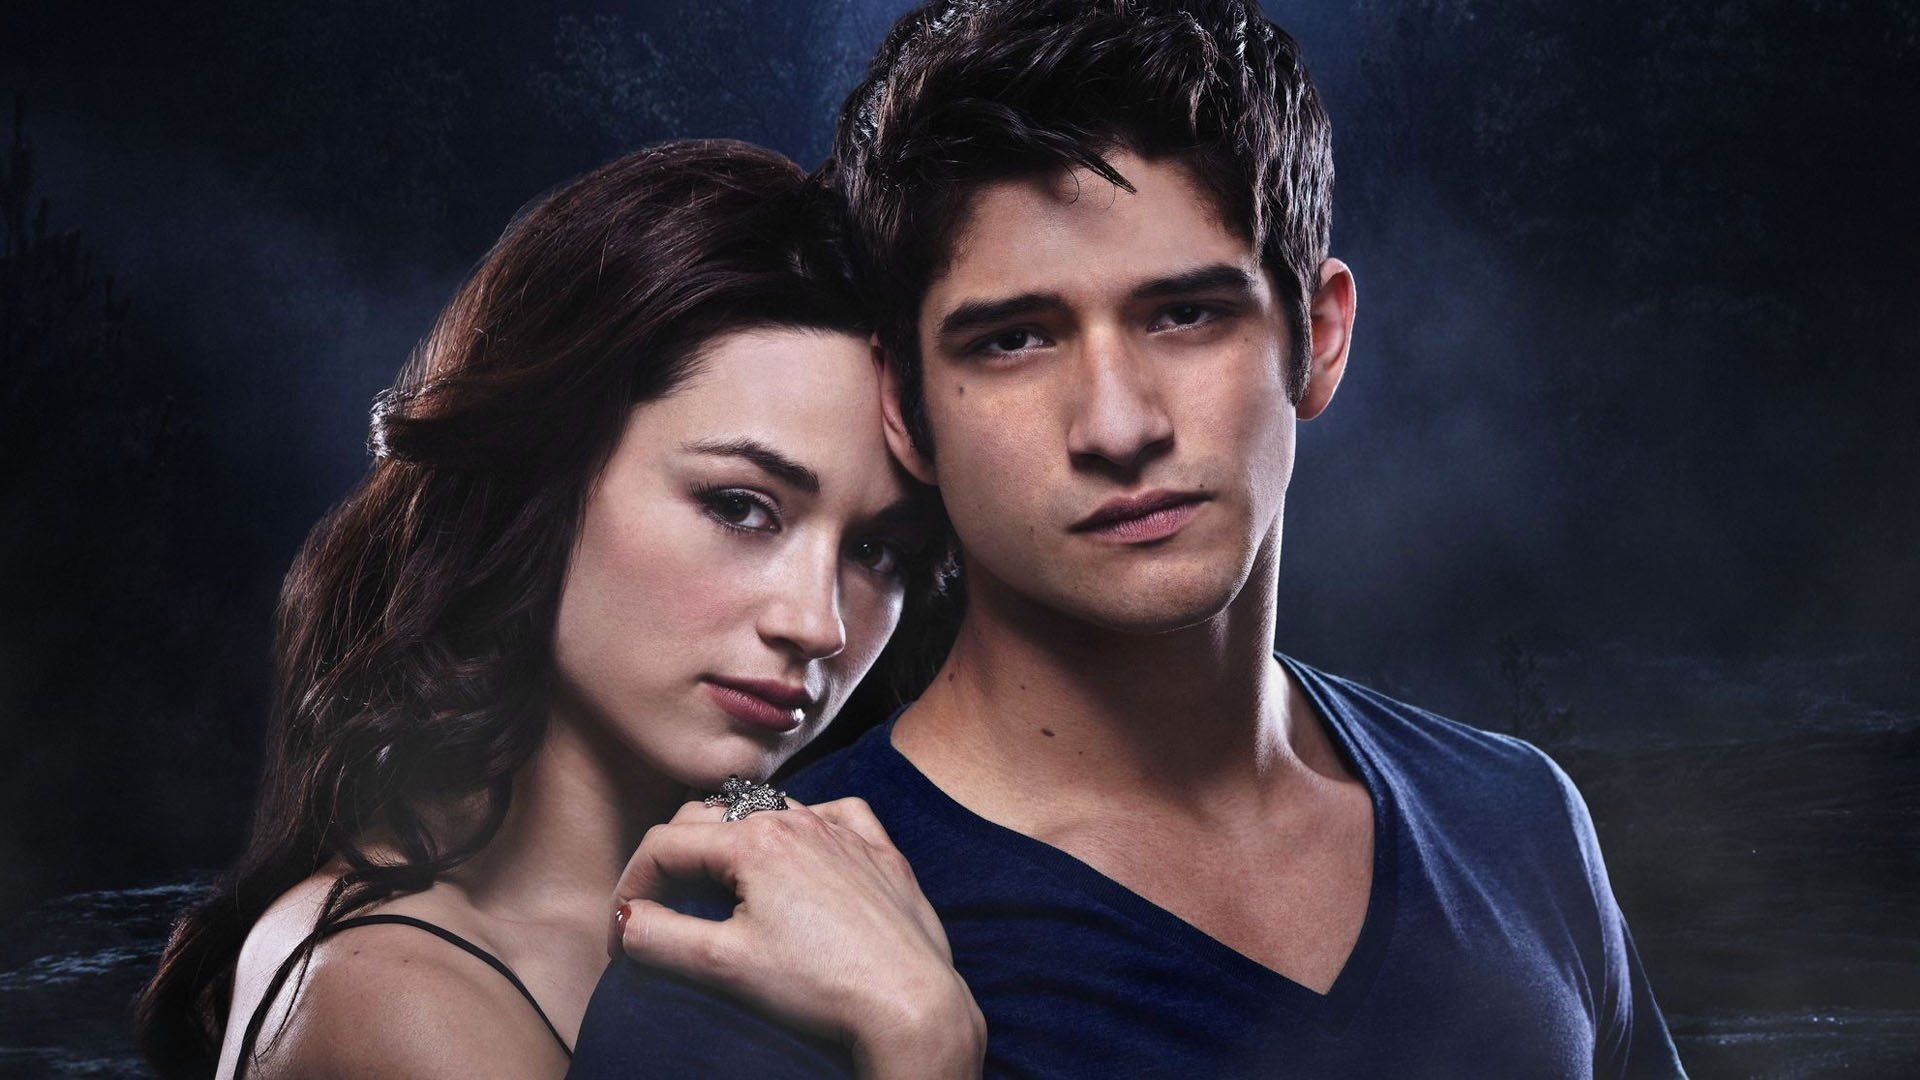 25 Teen Wolf HD Wallpapers | Backgrounds - Wallpaper Abyss